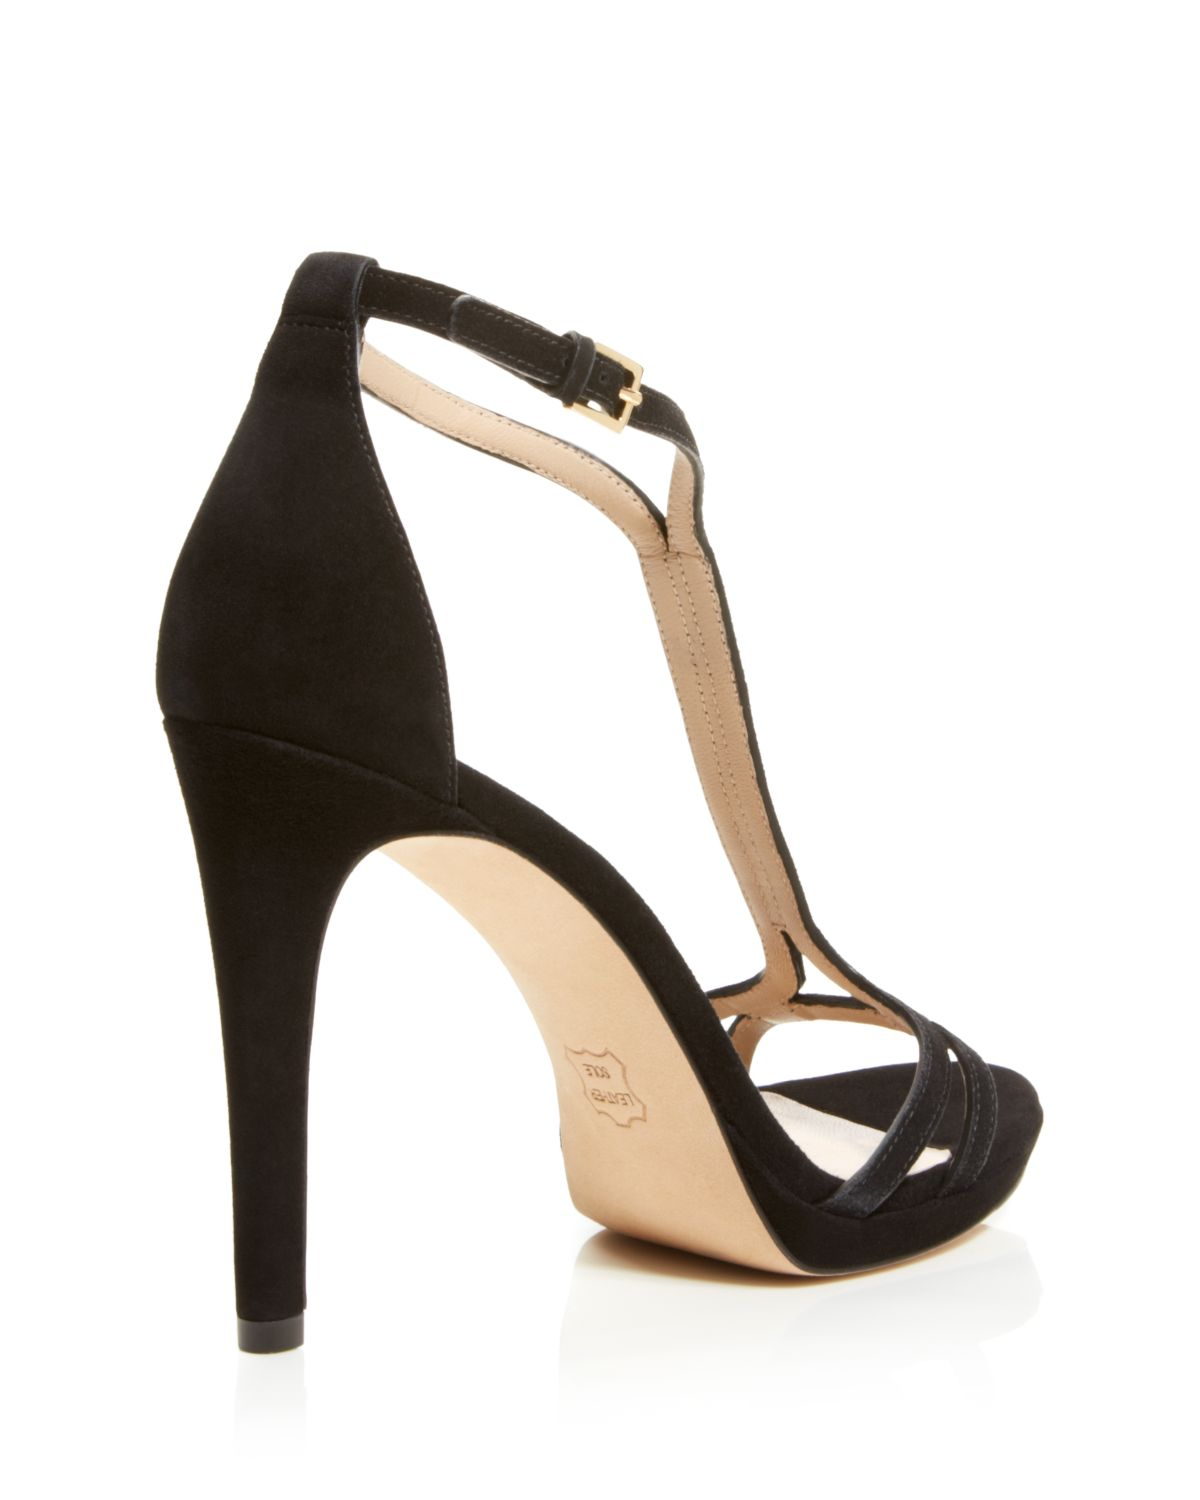 You will find 5 Inch Stiletto Heels Pumps and Sandal Platform on our 5 Inch High category.